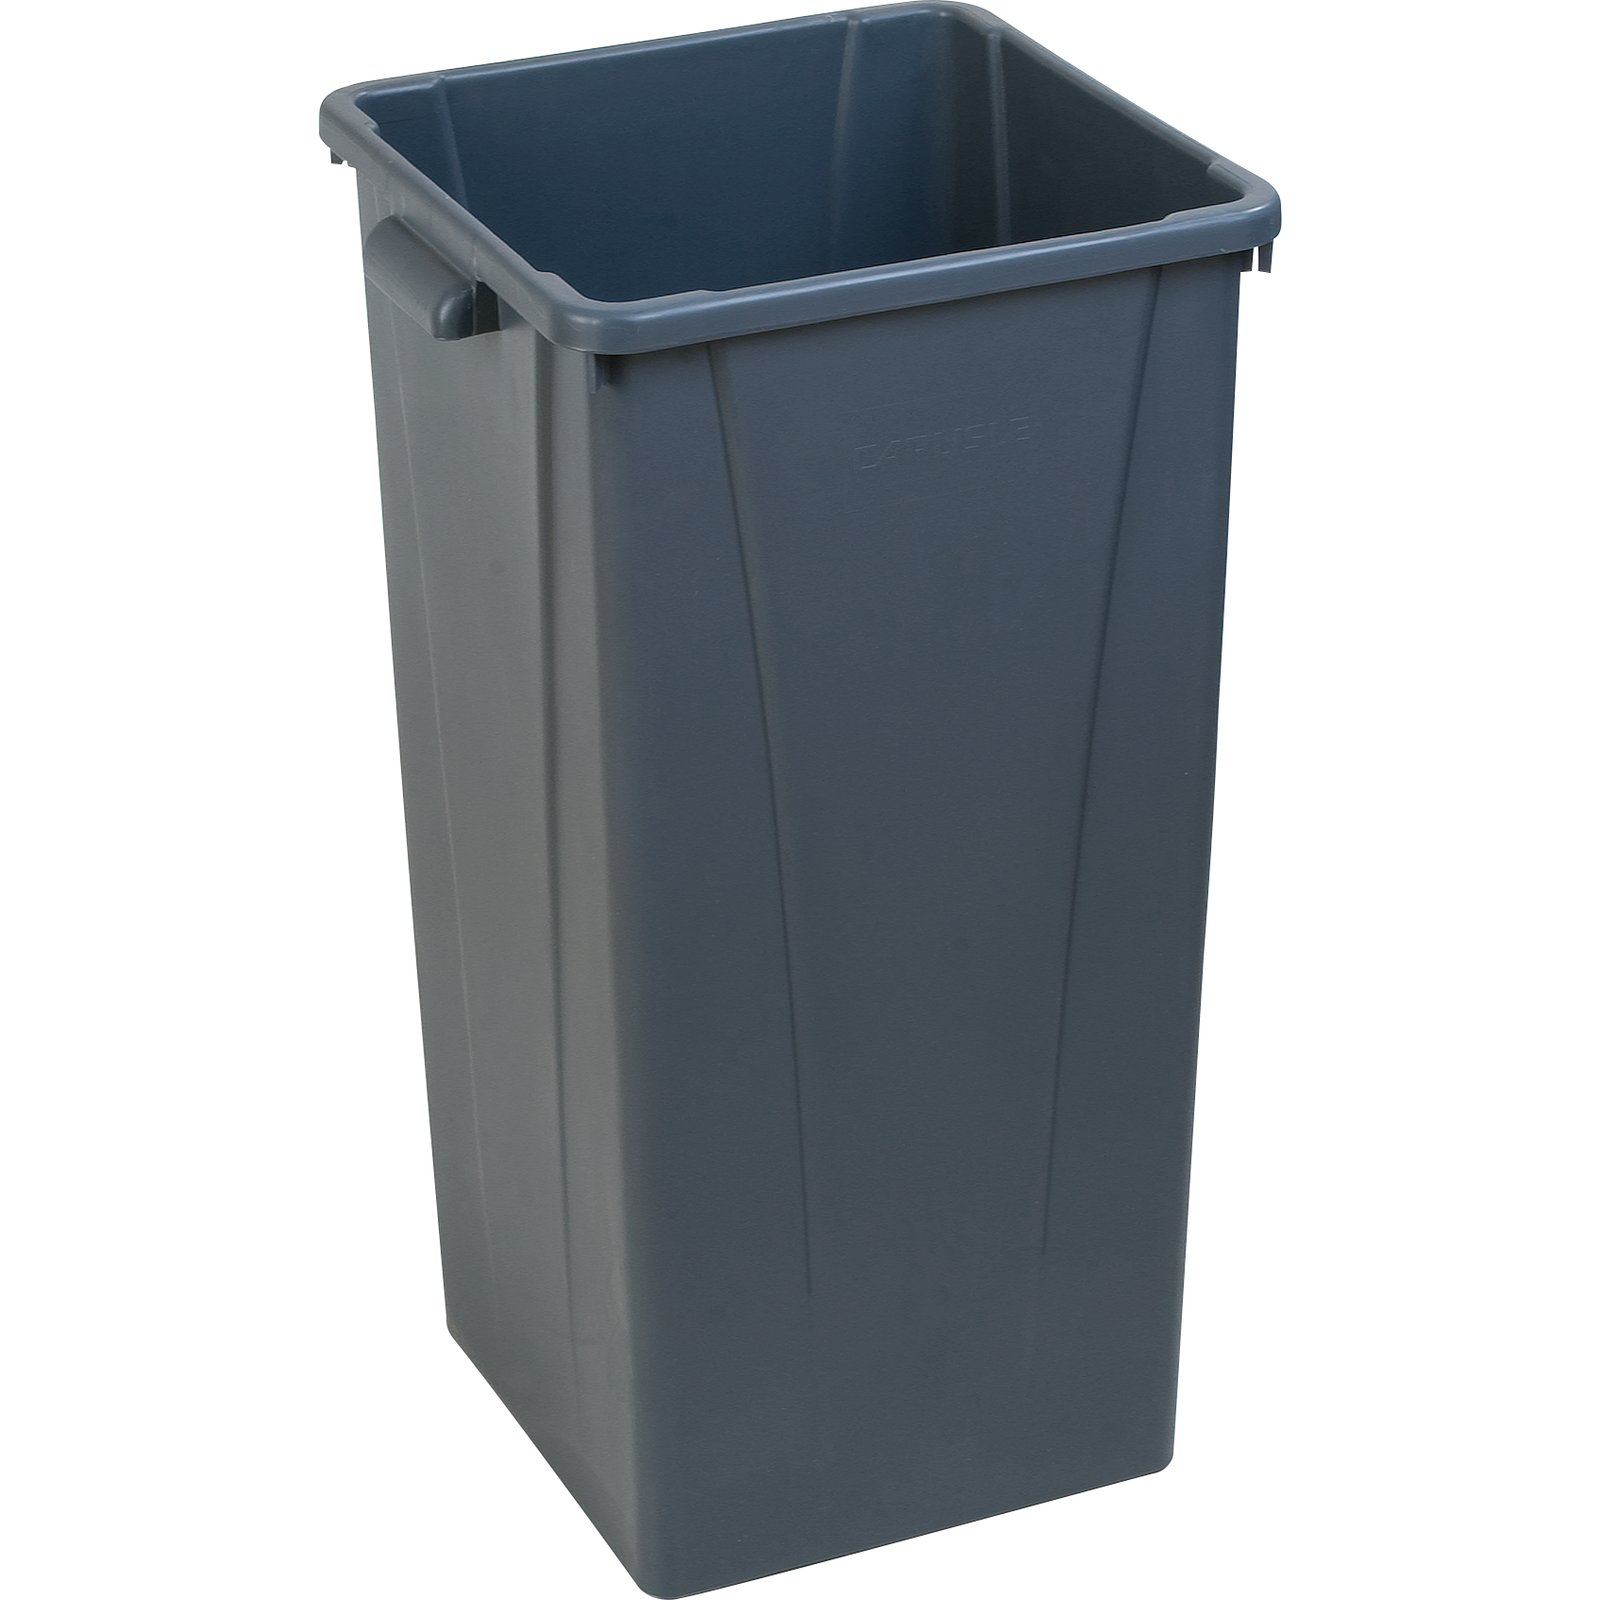 Tall Narrow Trash Can 34352323 Centurian Square Tall Waste Container Trash